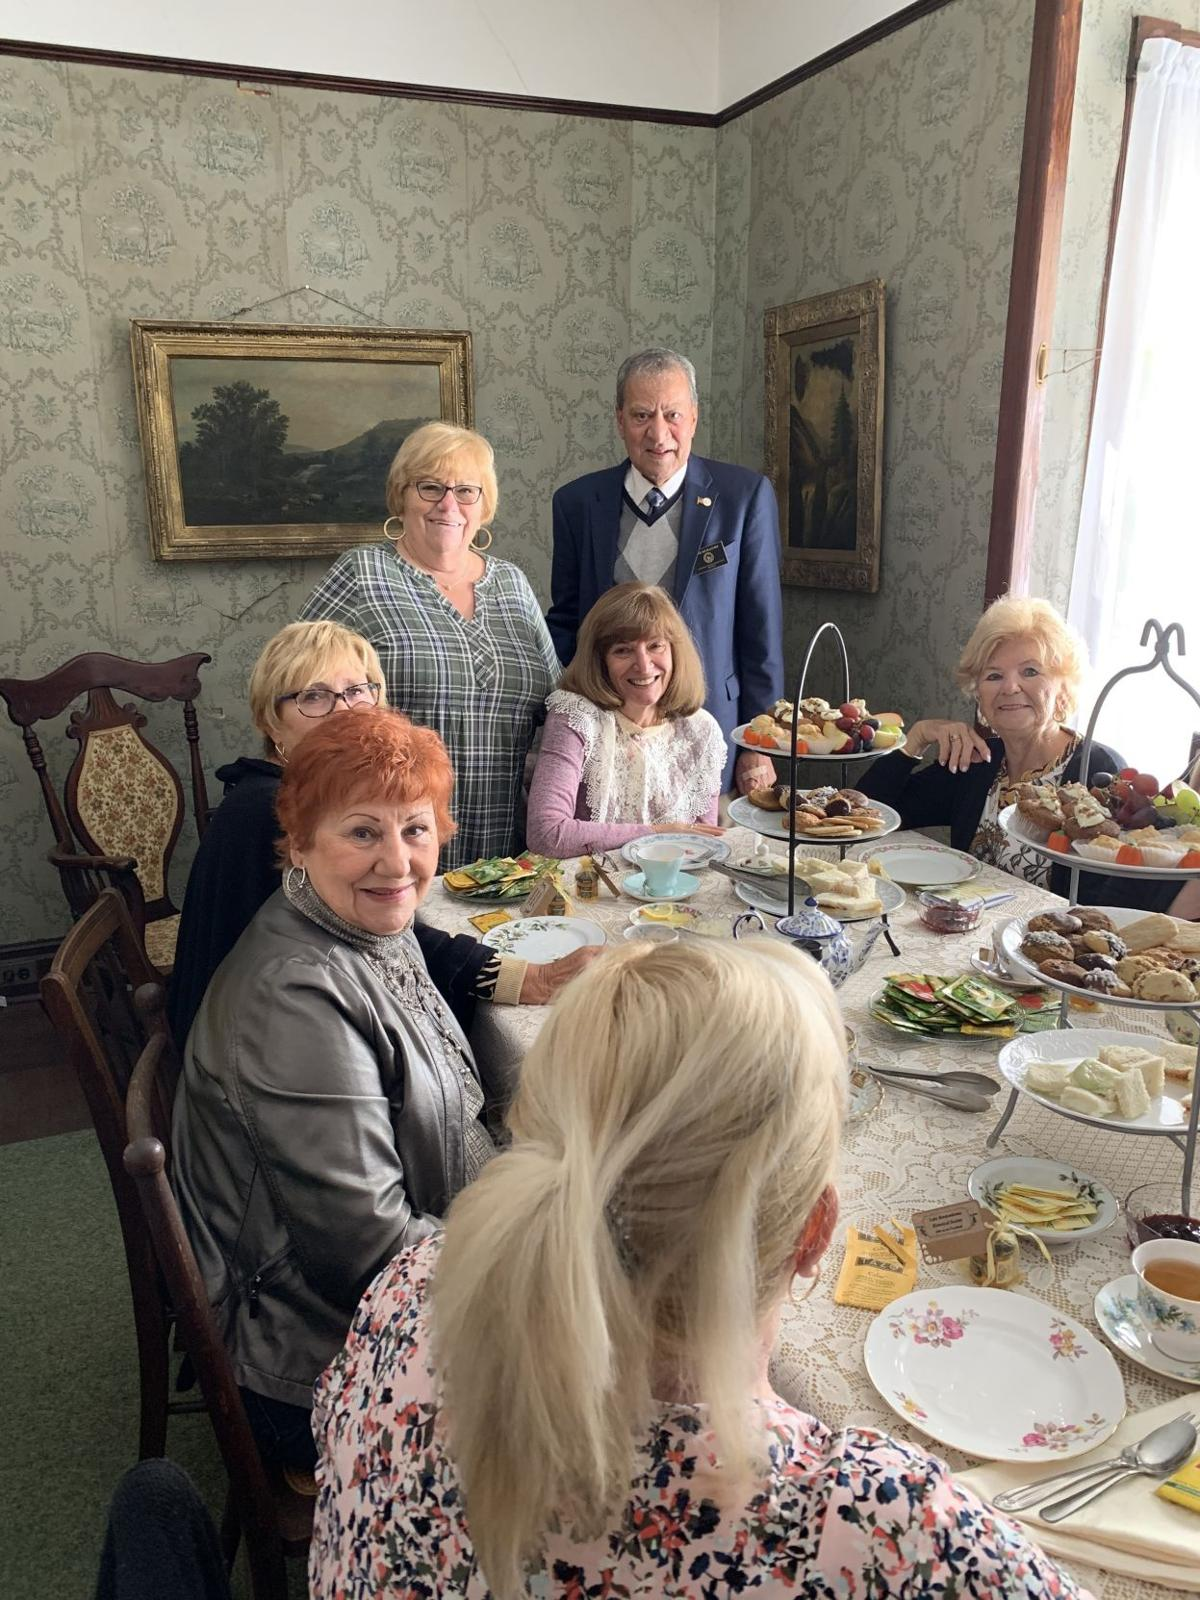 Suffolk County Legislator Tom Muratore Attends a Victorian Tea Hosted by the Lake Ronkonkoma Historical Society